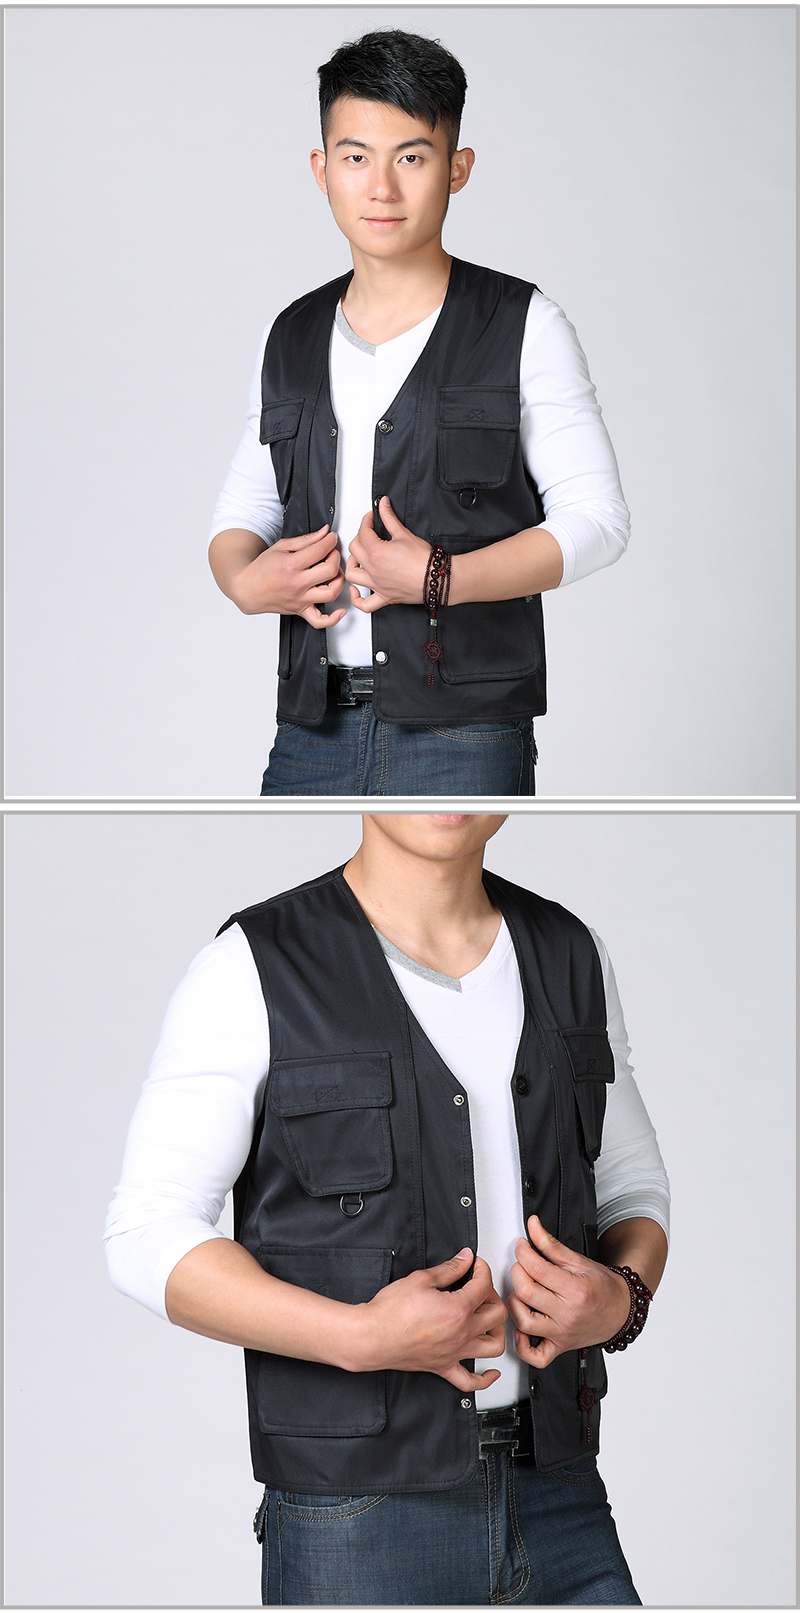 Spring Autumn Man Casual Vest Army Green Black Waistcoat For Men Leisure Gilet Male Herringbone Vest Multi Pockets Waistcoat Mens Weskit (6)